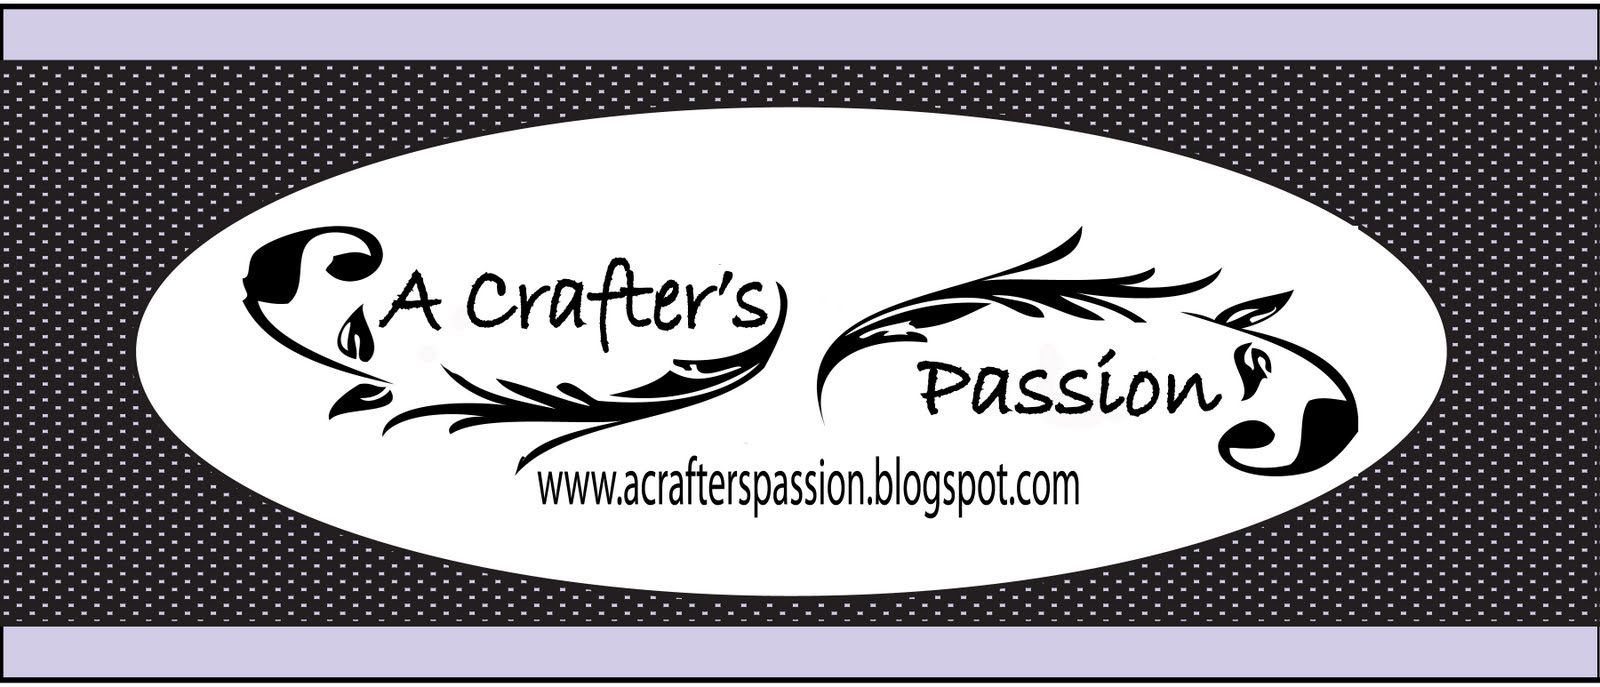 A Crafter's Passion